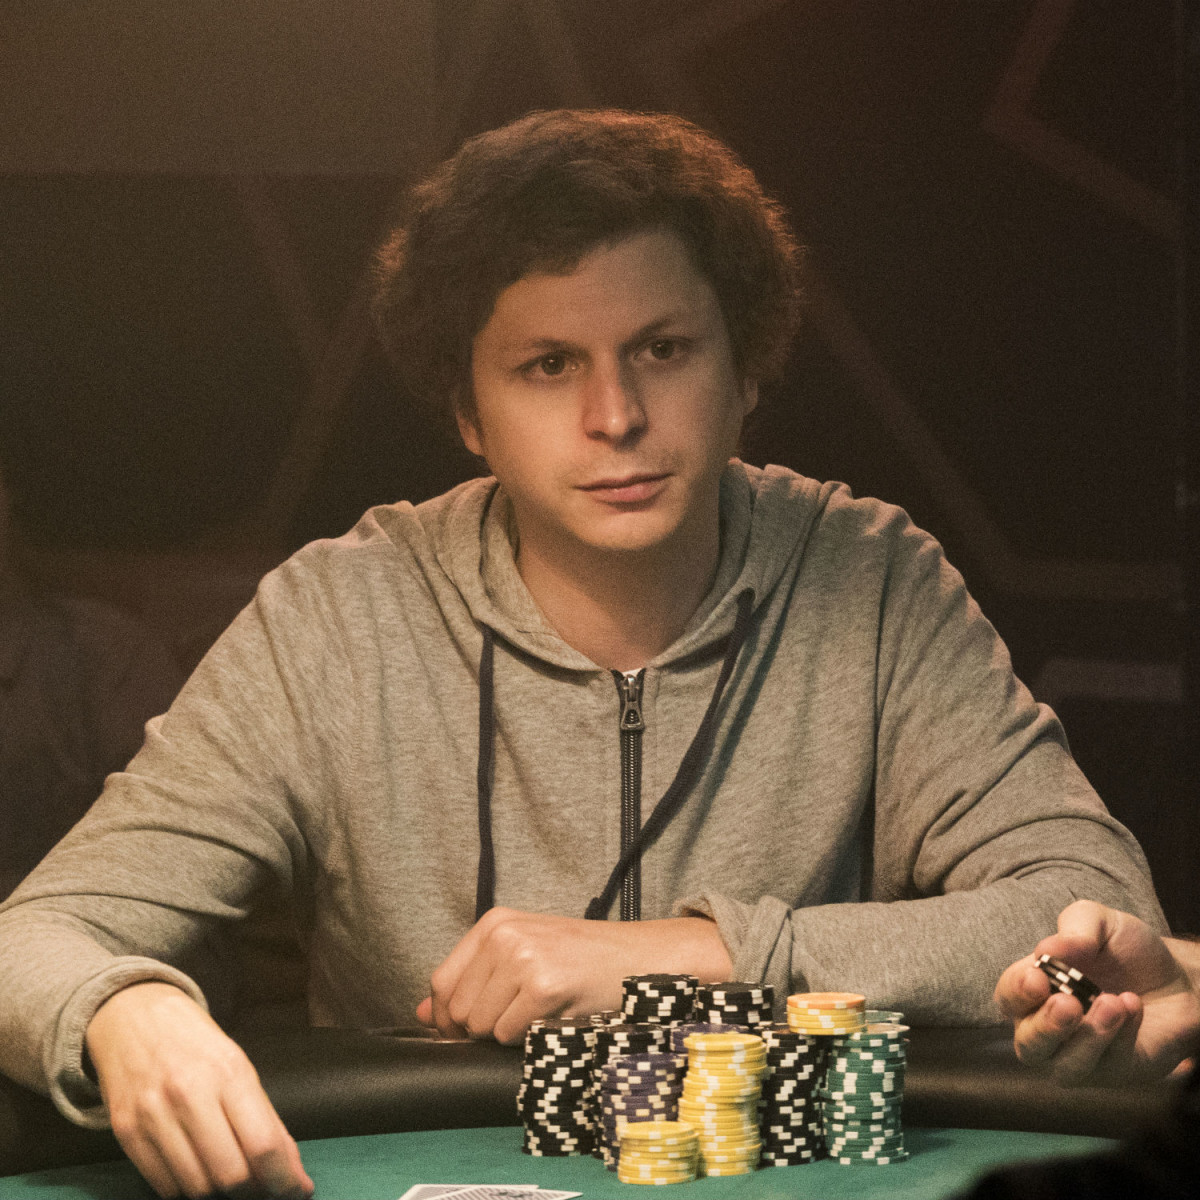 Michael Cera in Molly's Game